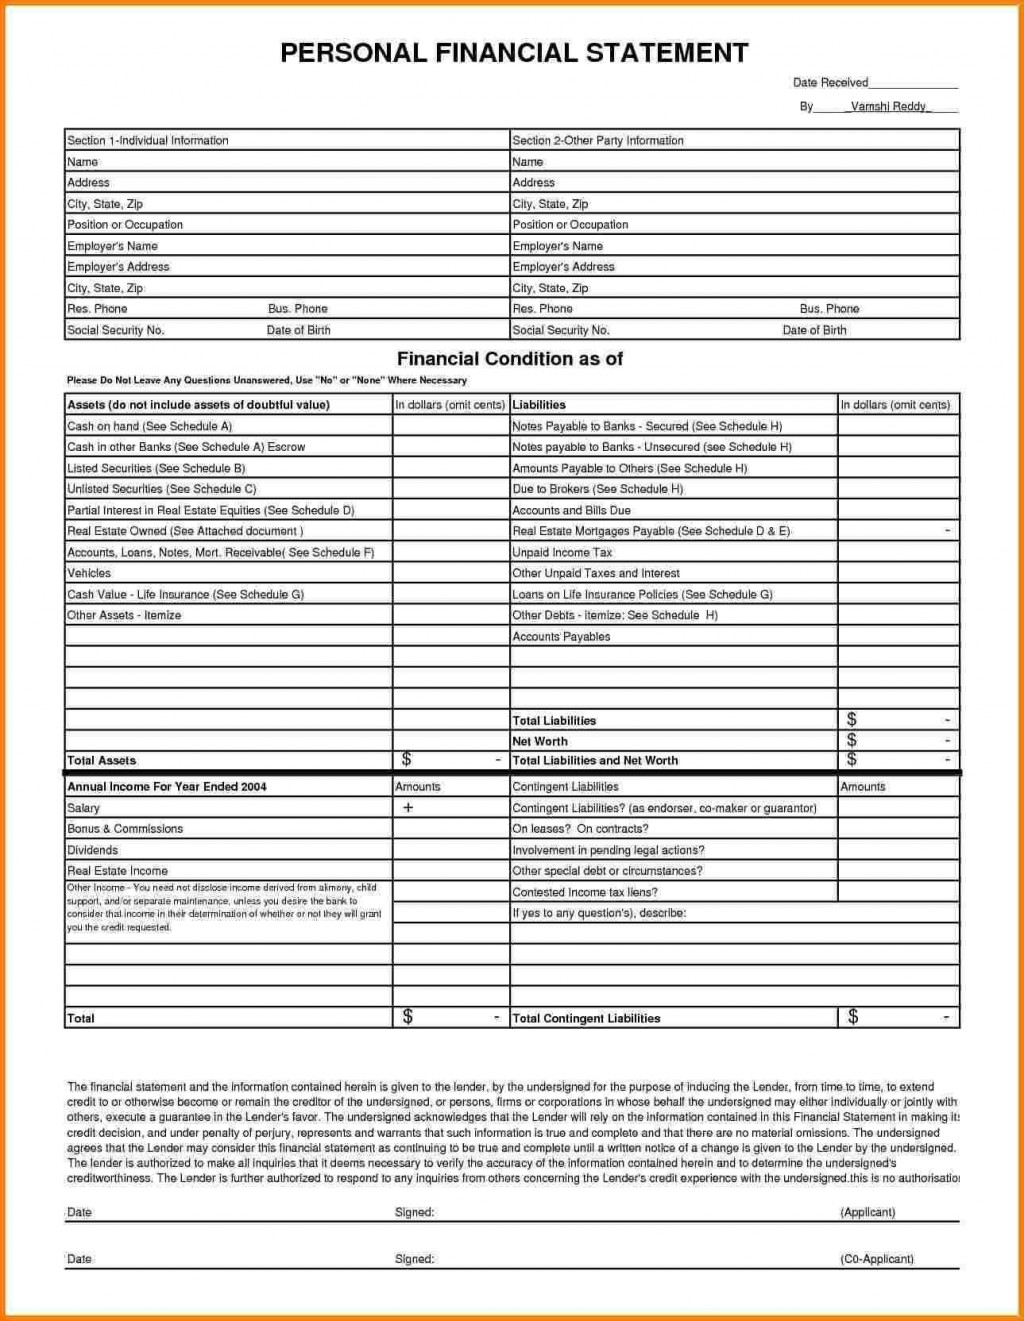 002 Marvelou Bank Statement Excel Format Free Download Image  Of Baroda Stock In IndiaLarge